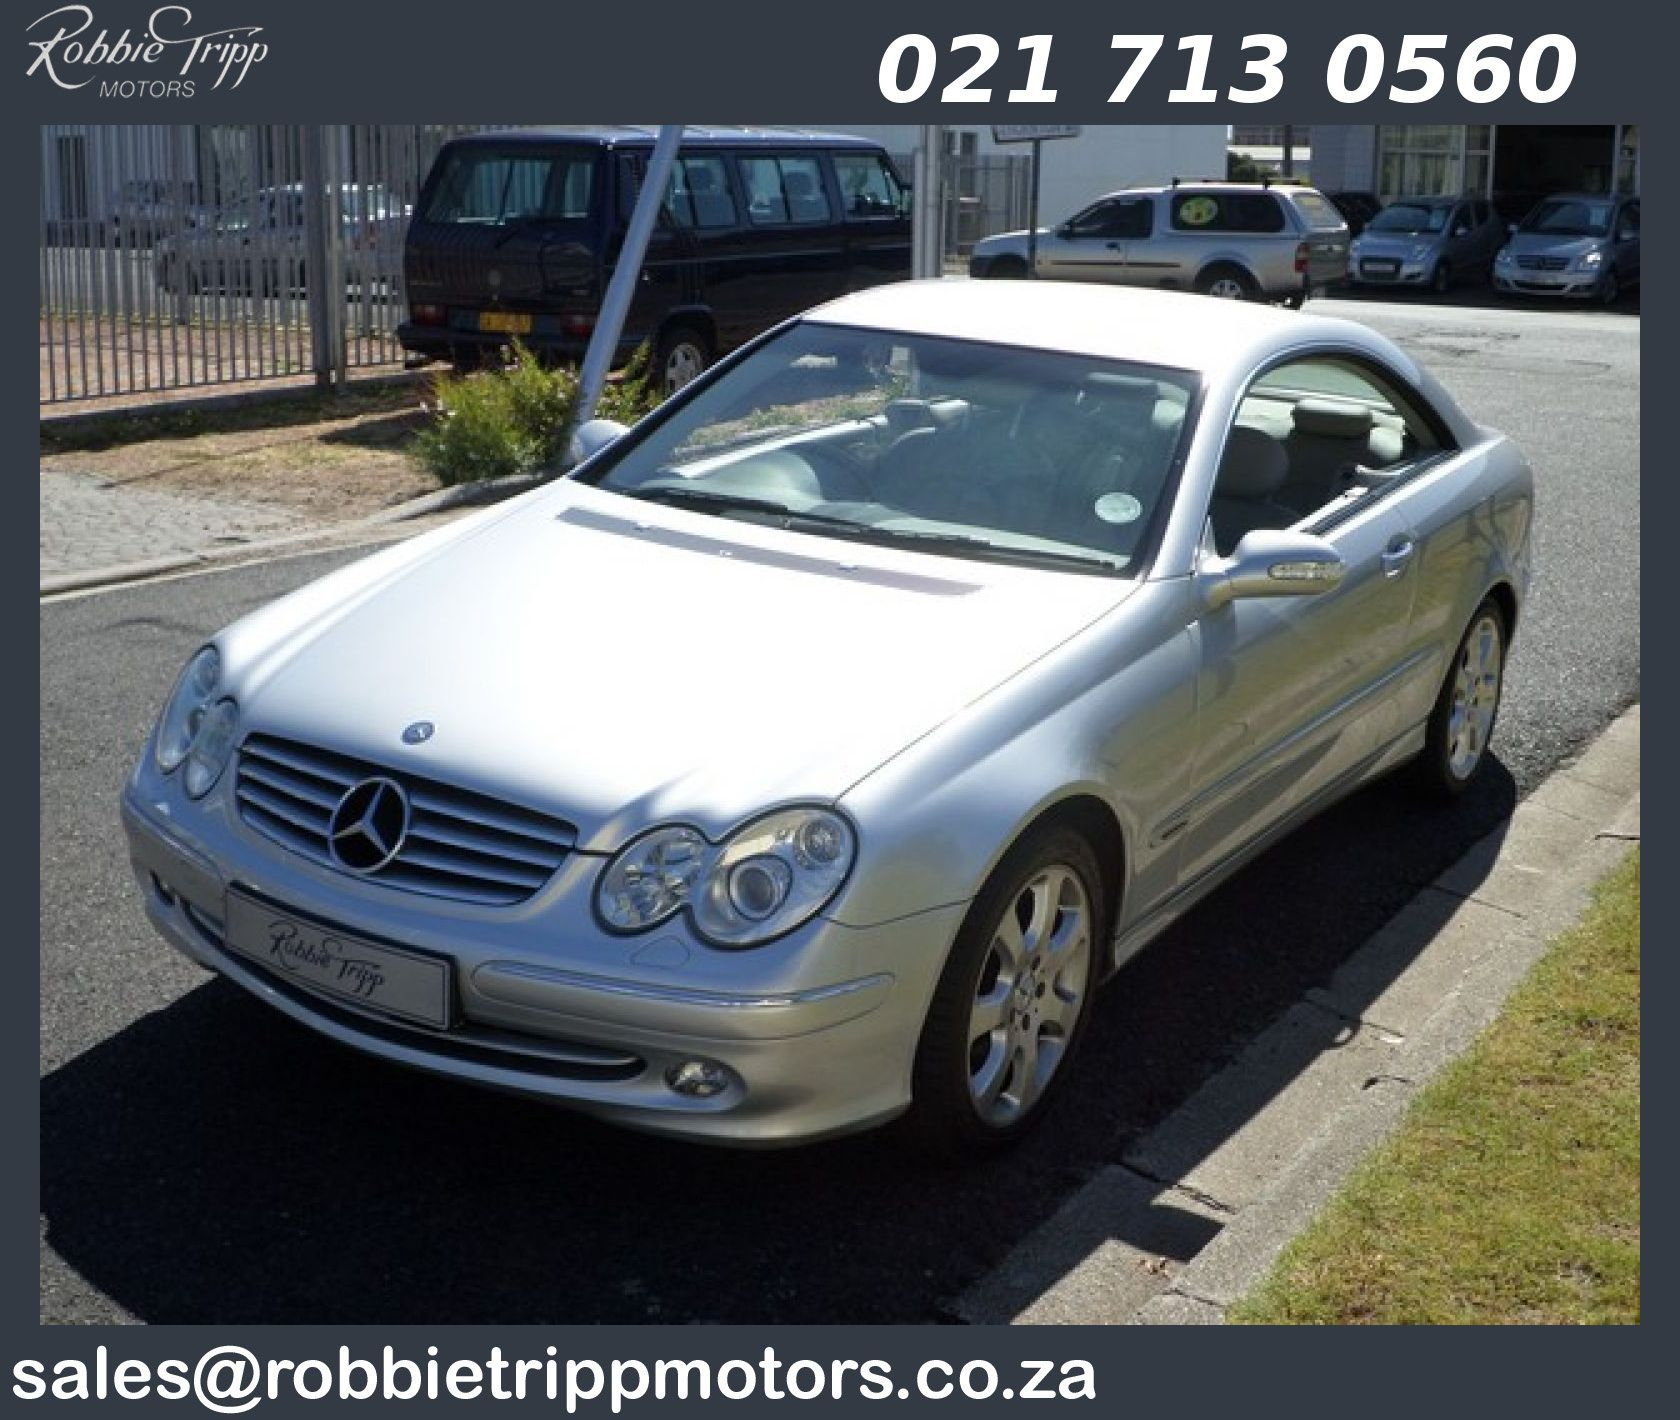 Mercedes Benz Clk 500 Coupe Available